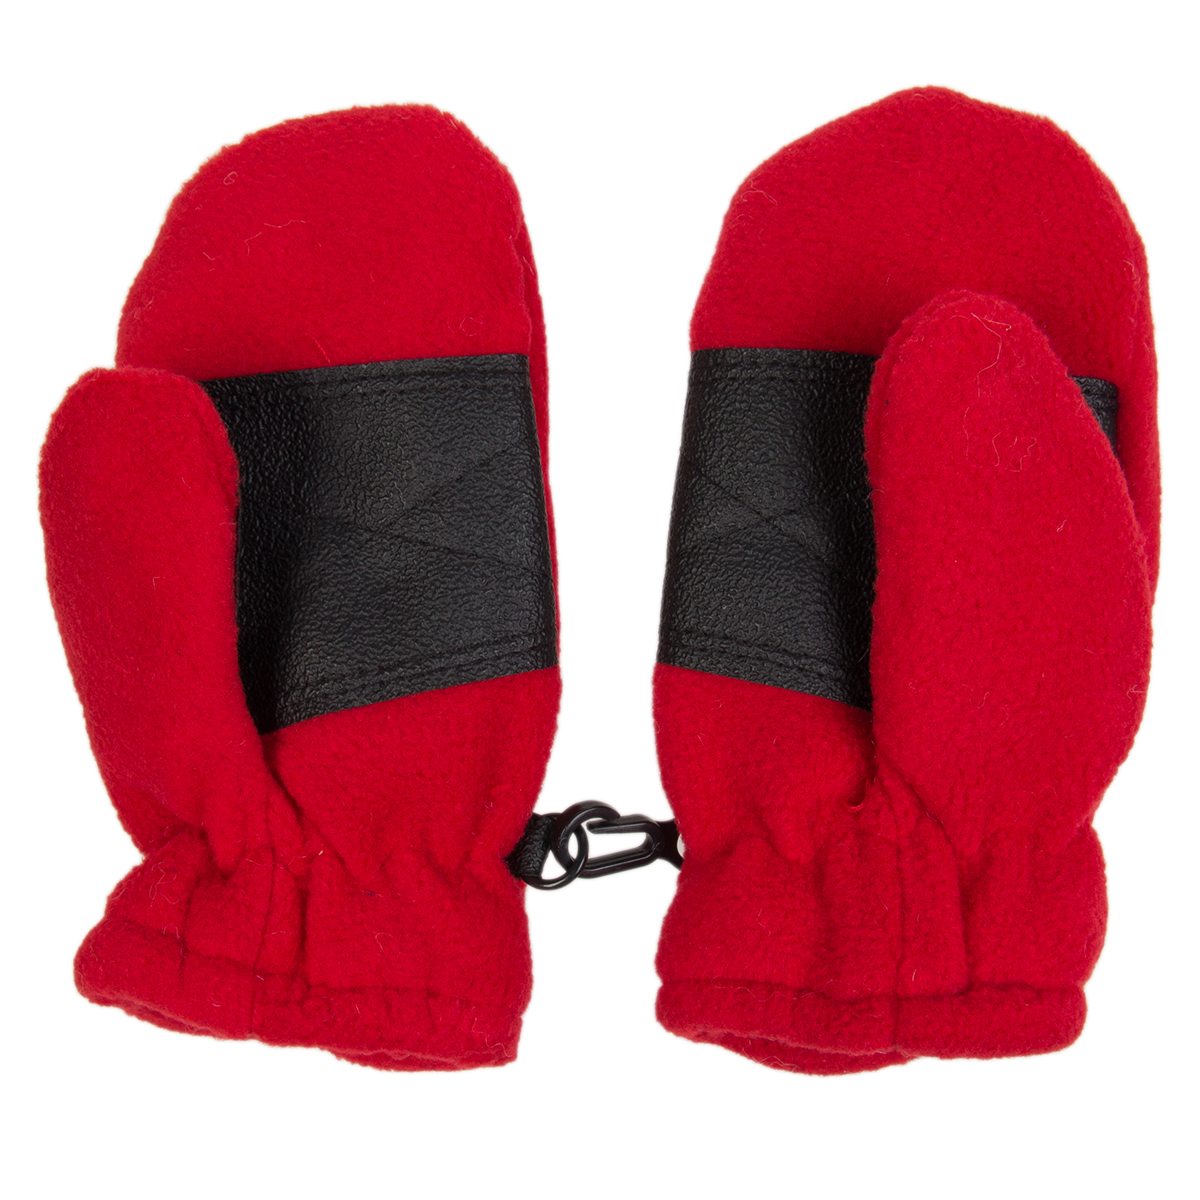 Panda Superstore Durable Bear Warm Gloves Useful Lovely Woolen Winter Baby Mittens 13*7CM Pink. Sold by Blancho Bedding. $ Panda Superstore Durable Lovely Warm Gloves Useful Cute Winter Baby Mittens 12*6CM Red. Sold by Blancho Bedding. $